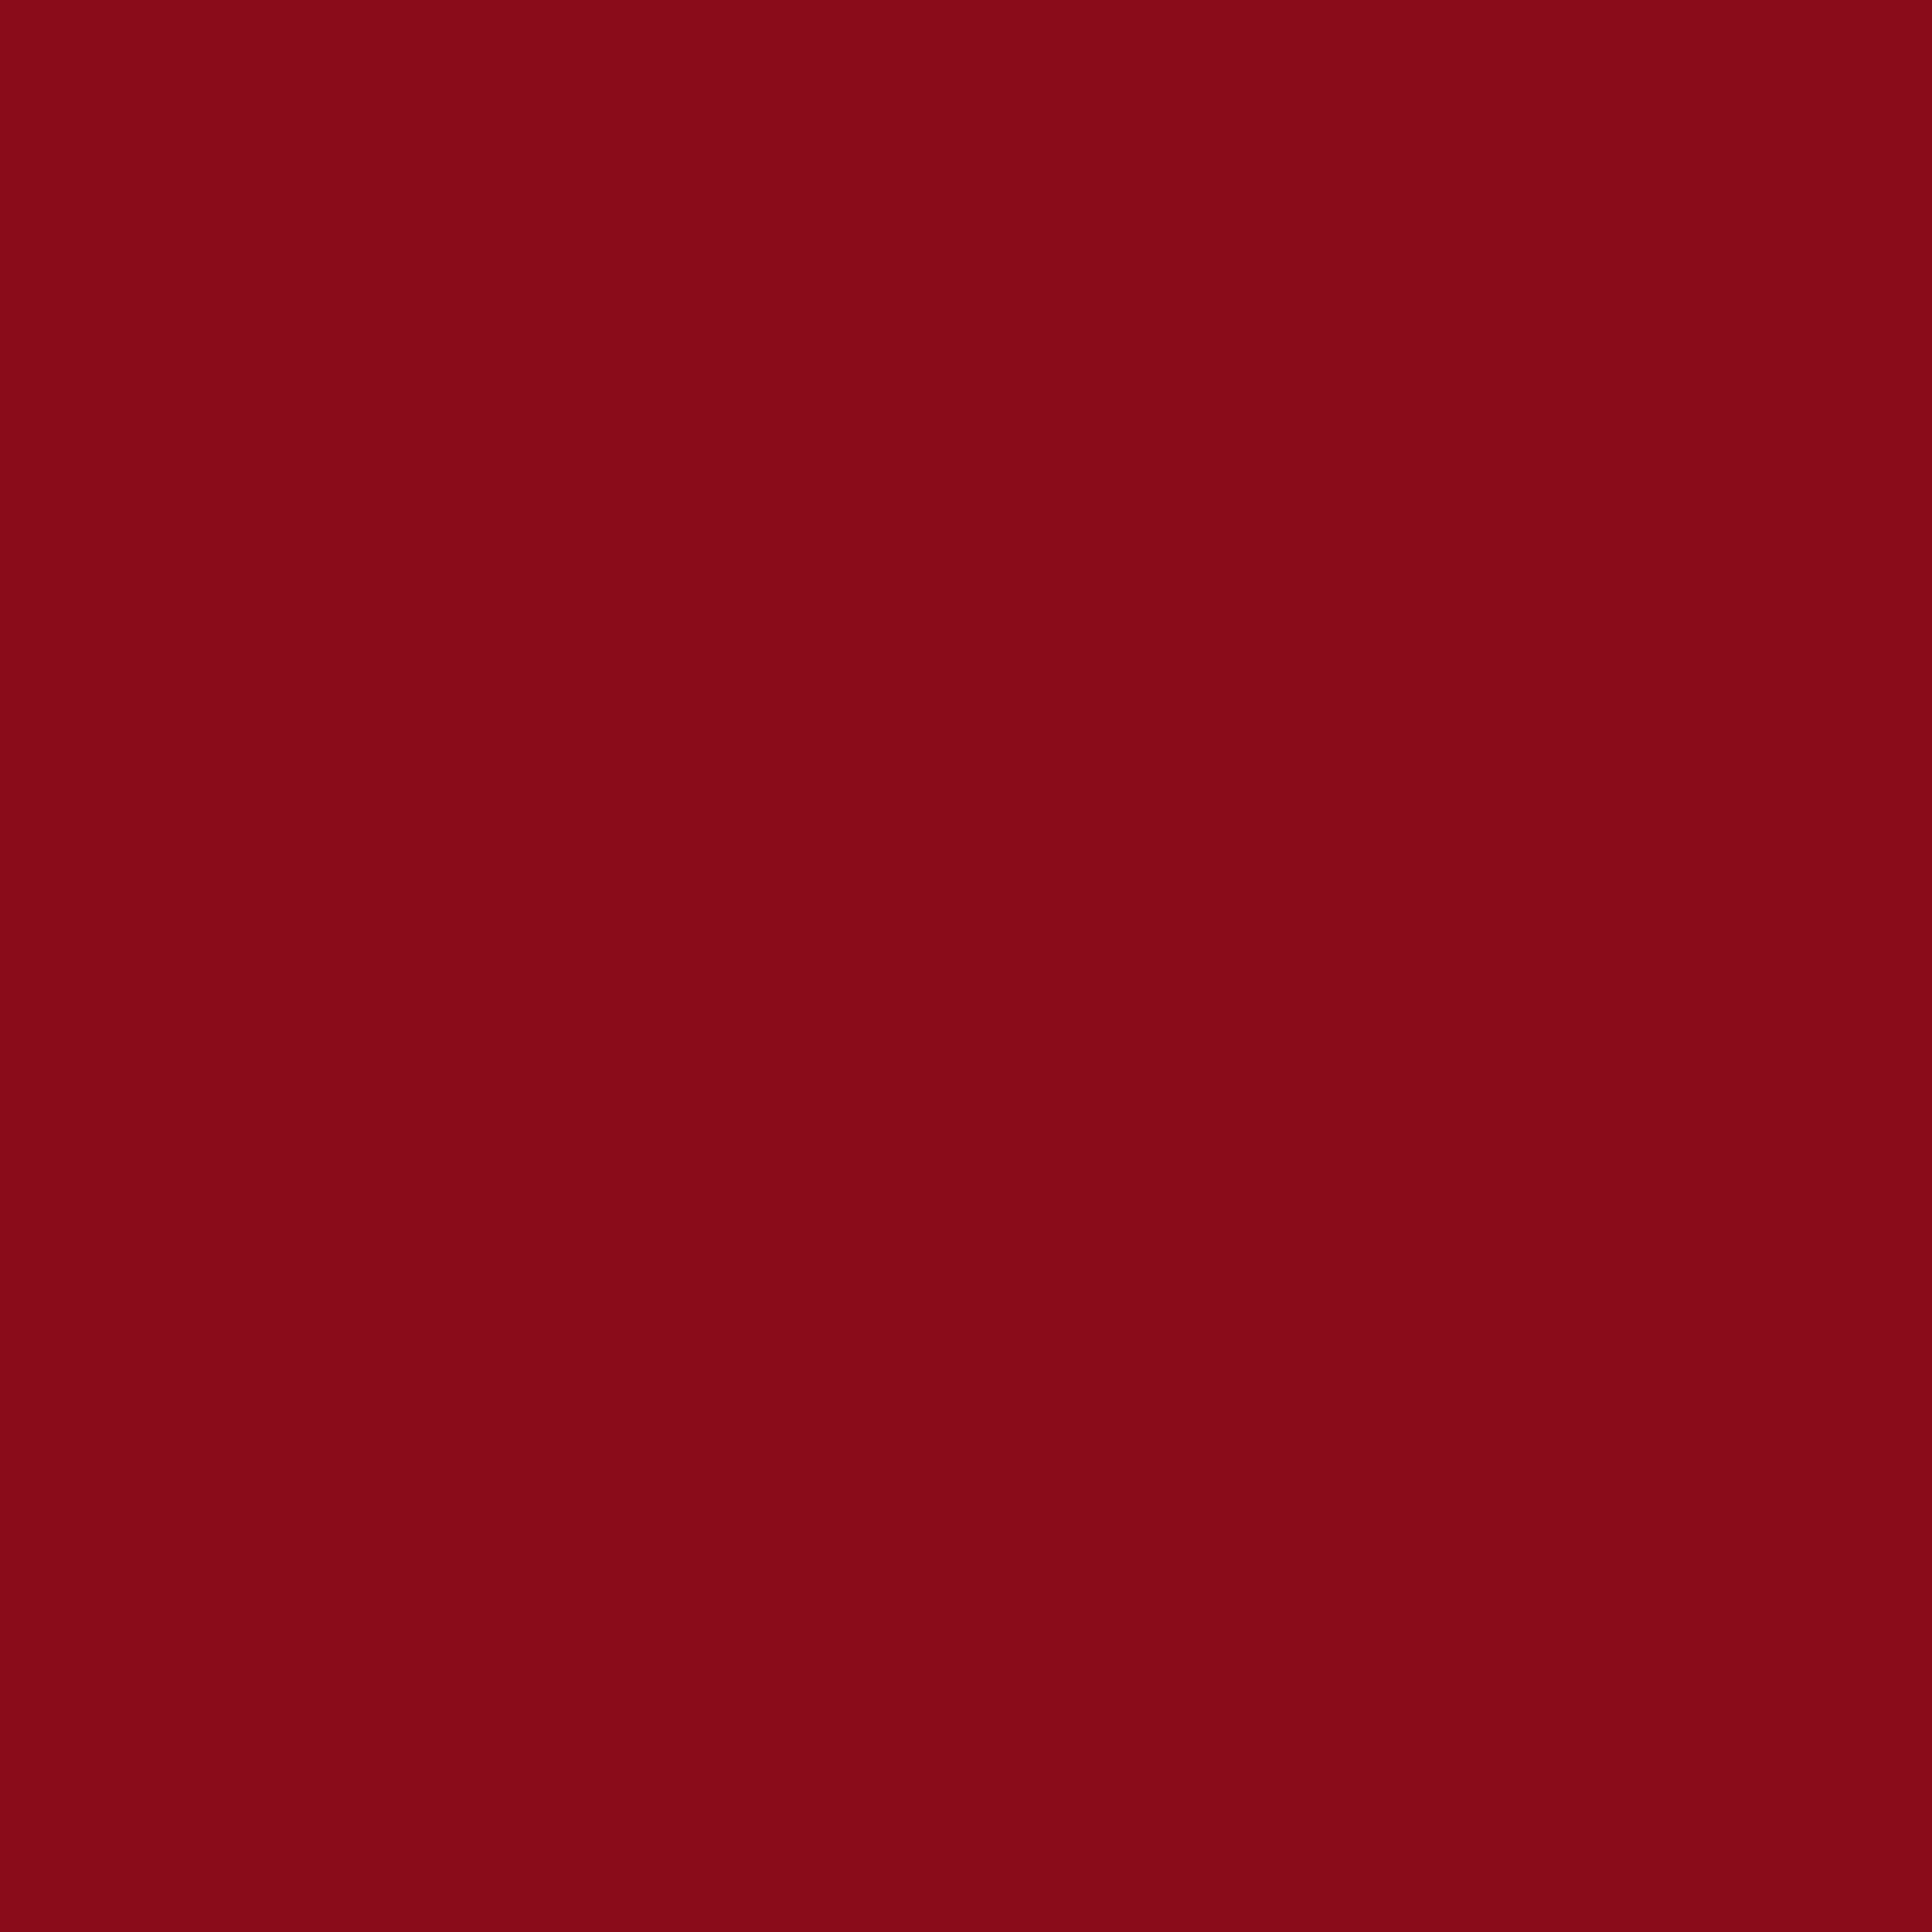 Avery Avery Facade Film RAL3005 Wine Red Gloss